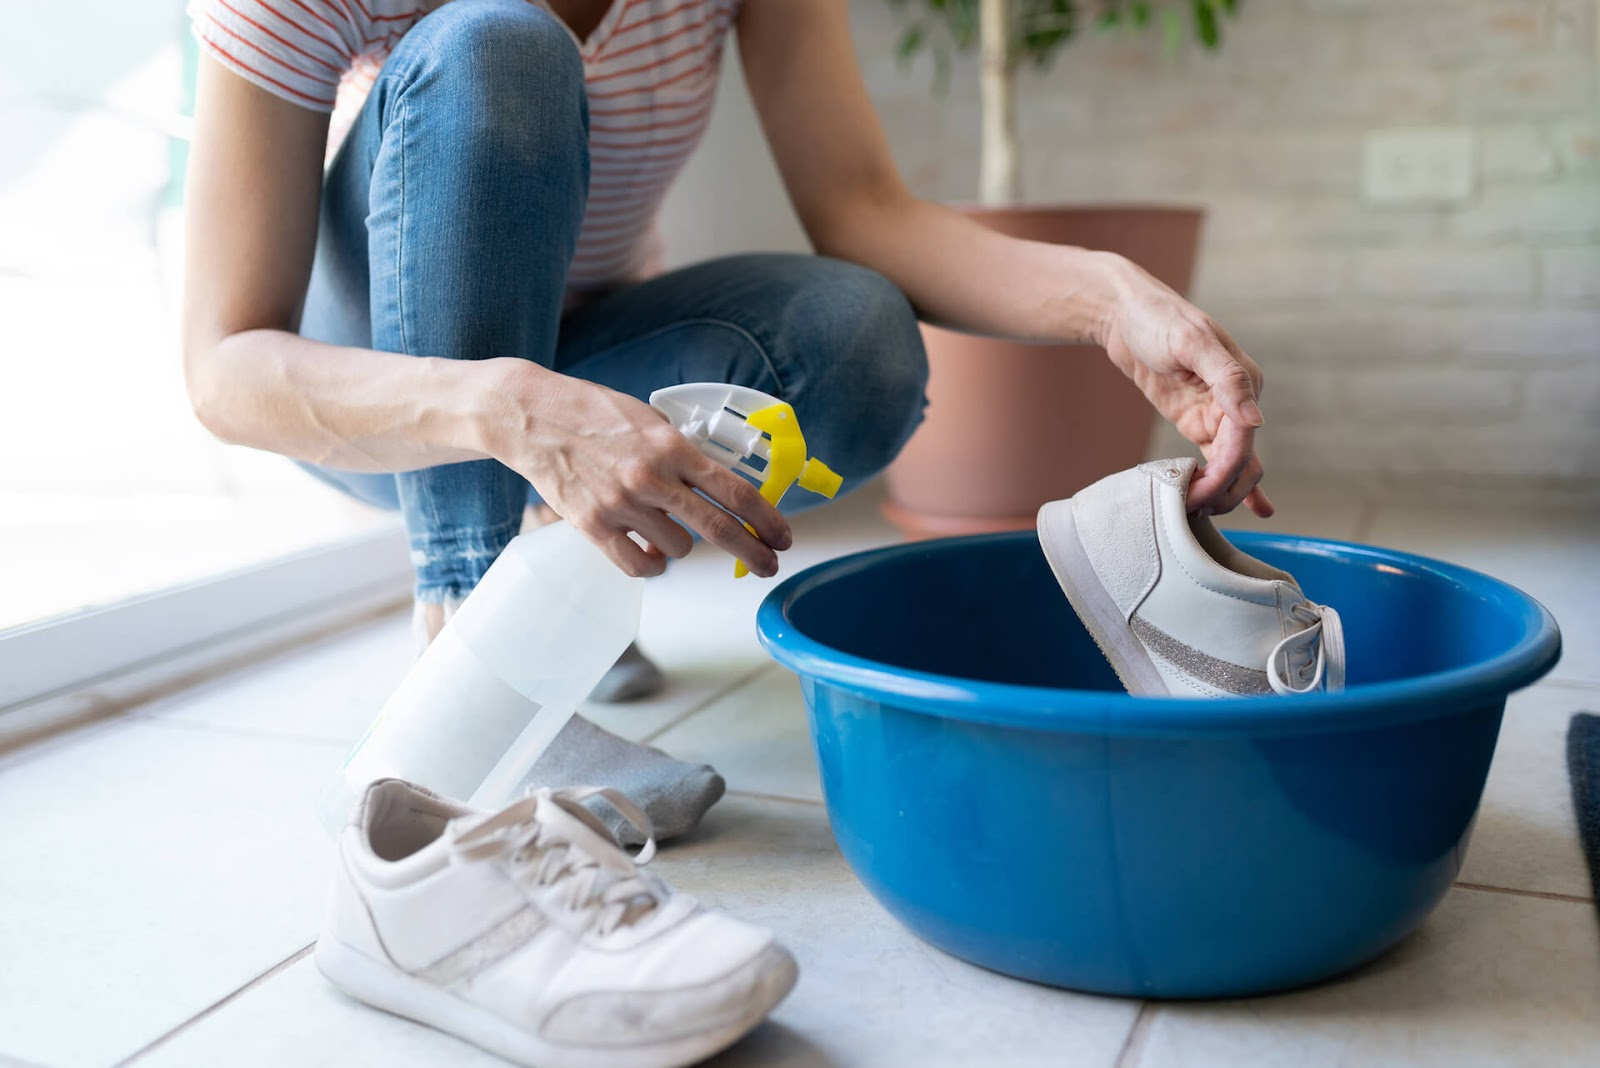 Woman spraying her shoes in a big, blue bucket